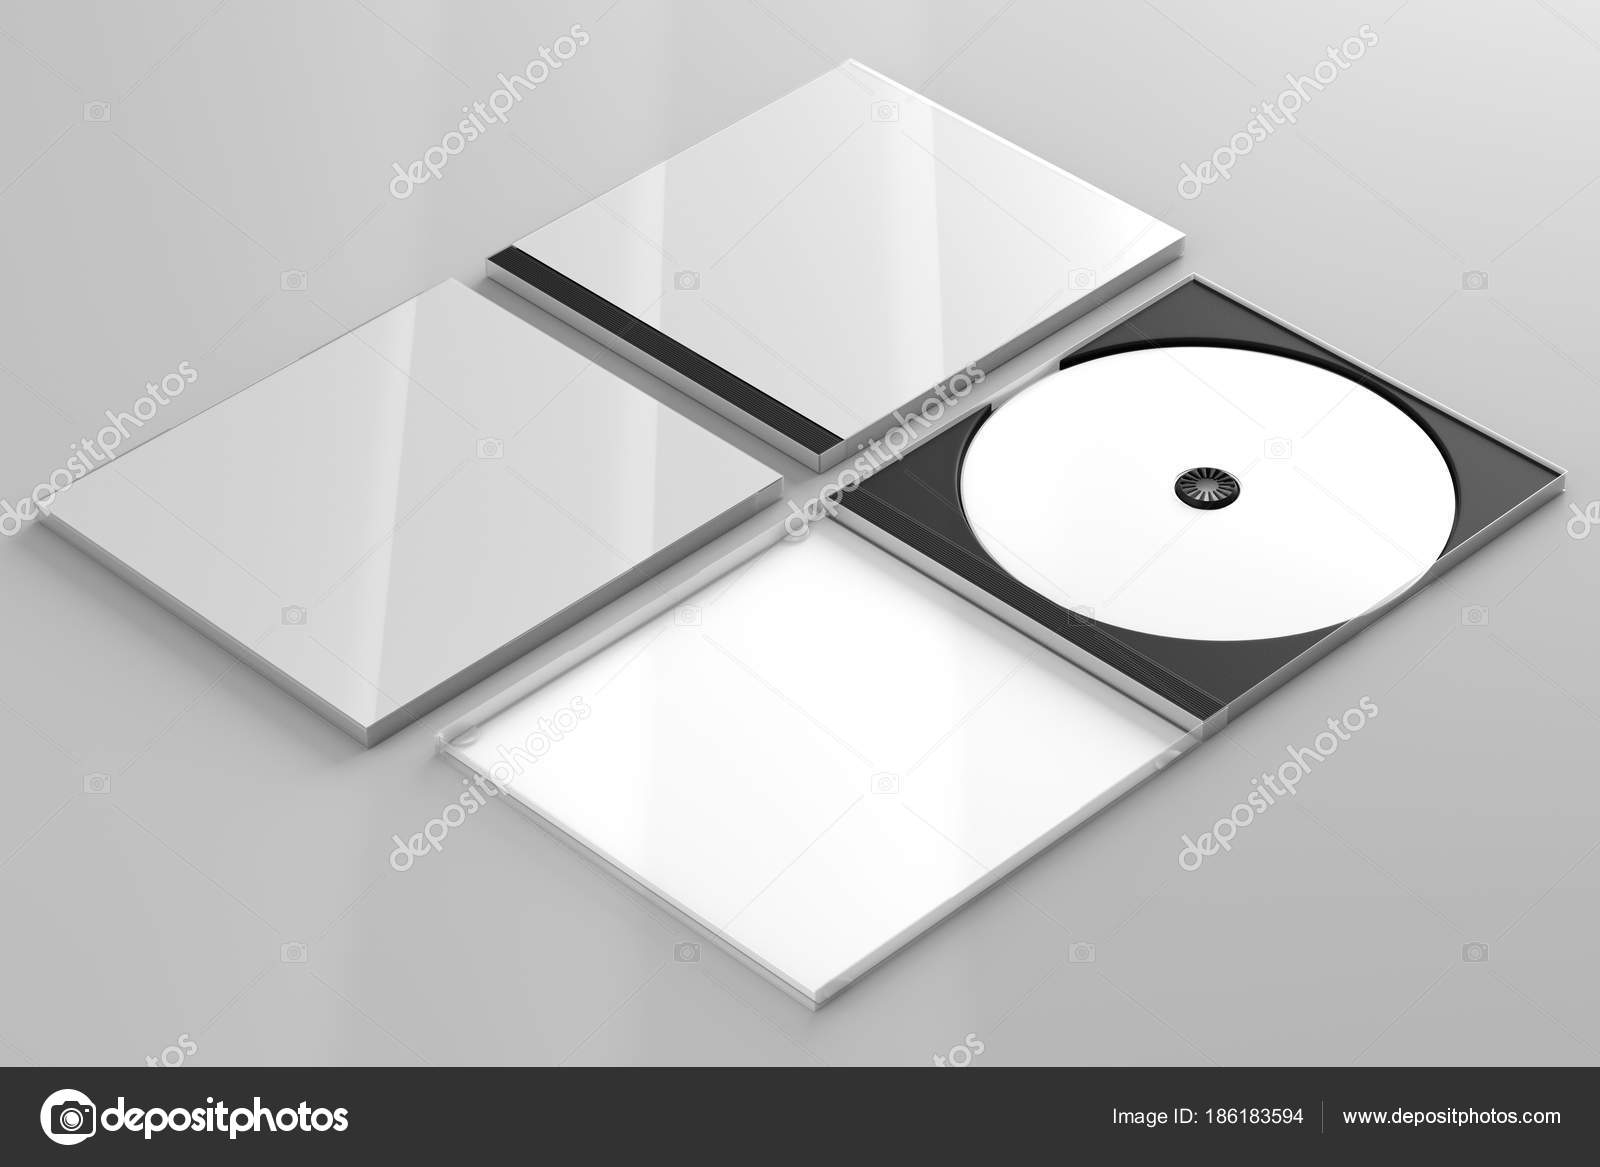 Cd Dvd Disc Plastic Box Mockup Perspective View Stock Photo